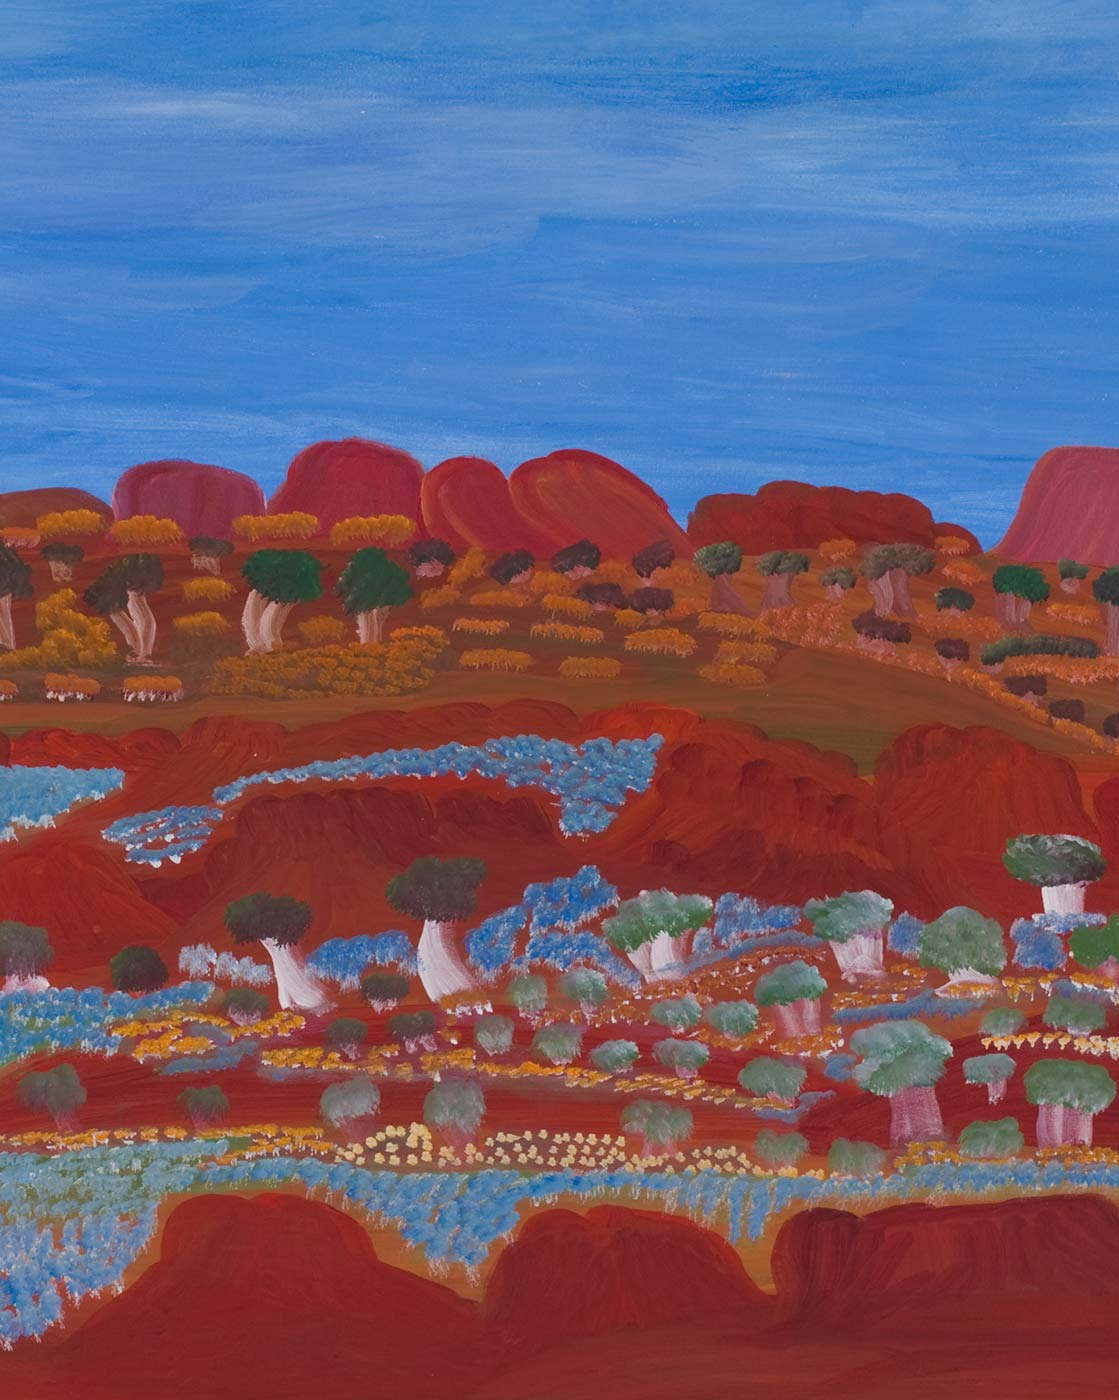 Cropped image of a painting on canvas with a range of orange-red rock formations lying low against a blue sky backdrop. In front of the formations are green and light brown trees and yellow-brown grass-like foliage. In the foreground are two horizontal rows of orange-red rock formations creating a valley-like appearance. The valley and some of the rock formations are covered in expanses of flowers in blue, yellow and cream as well as trees in green and beige-white. - click to view larger image